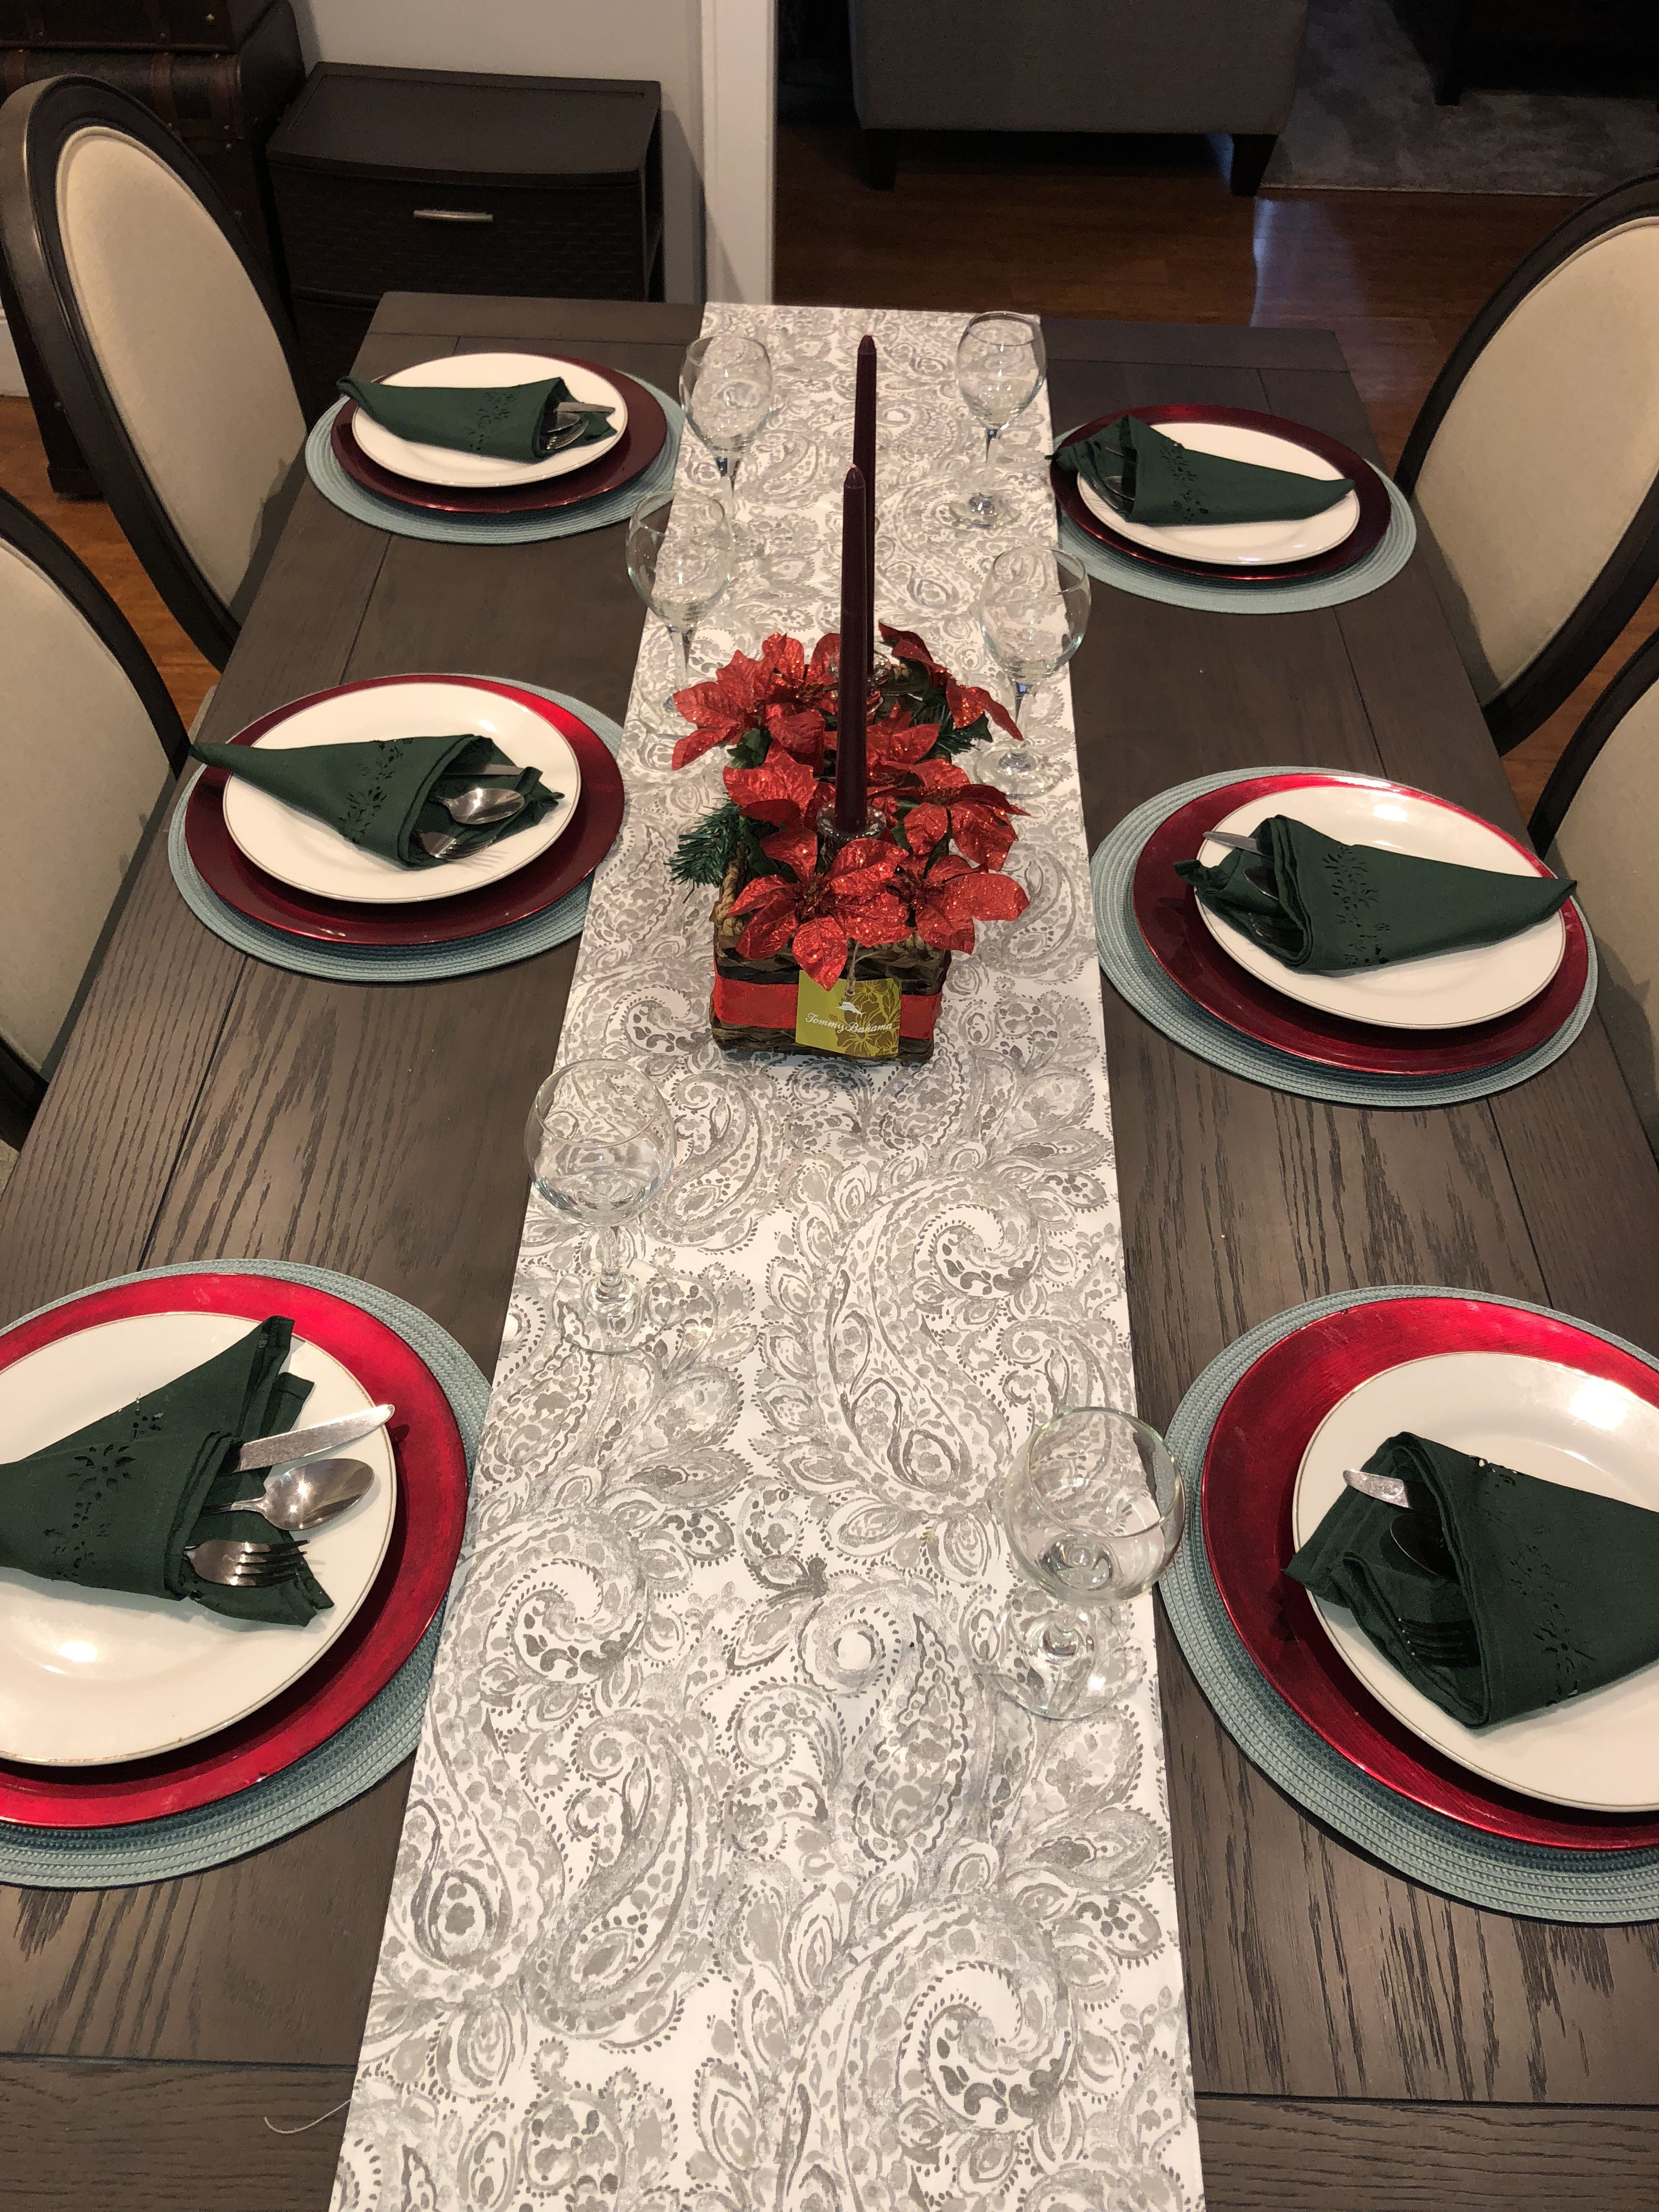 Dining Room Table Set Up For The Holidays Green Napkins